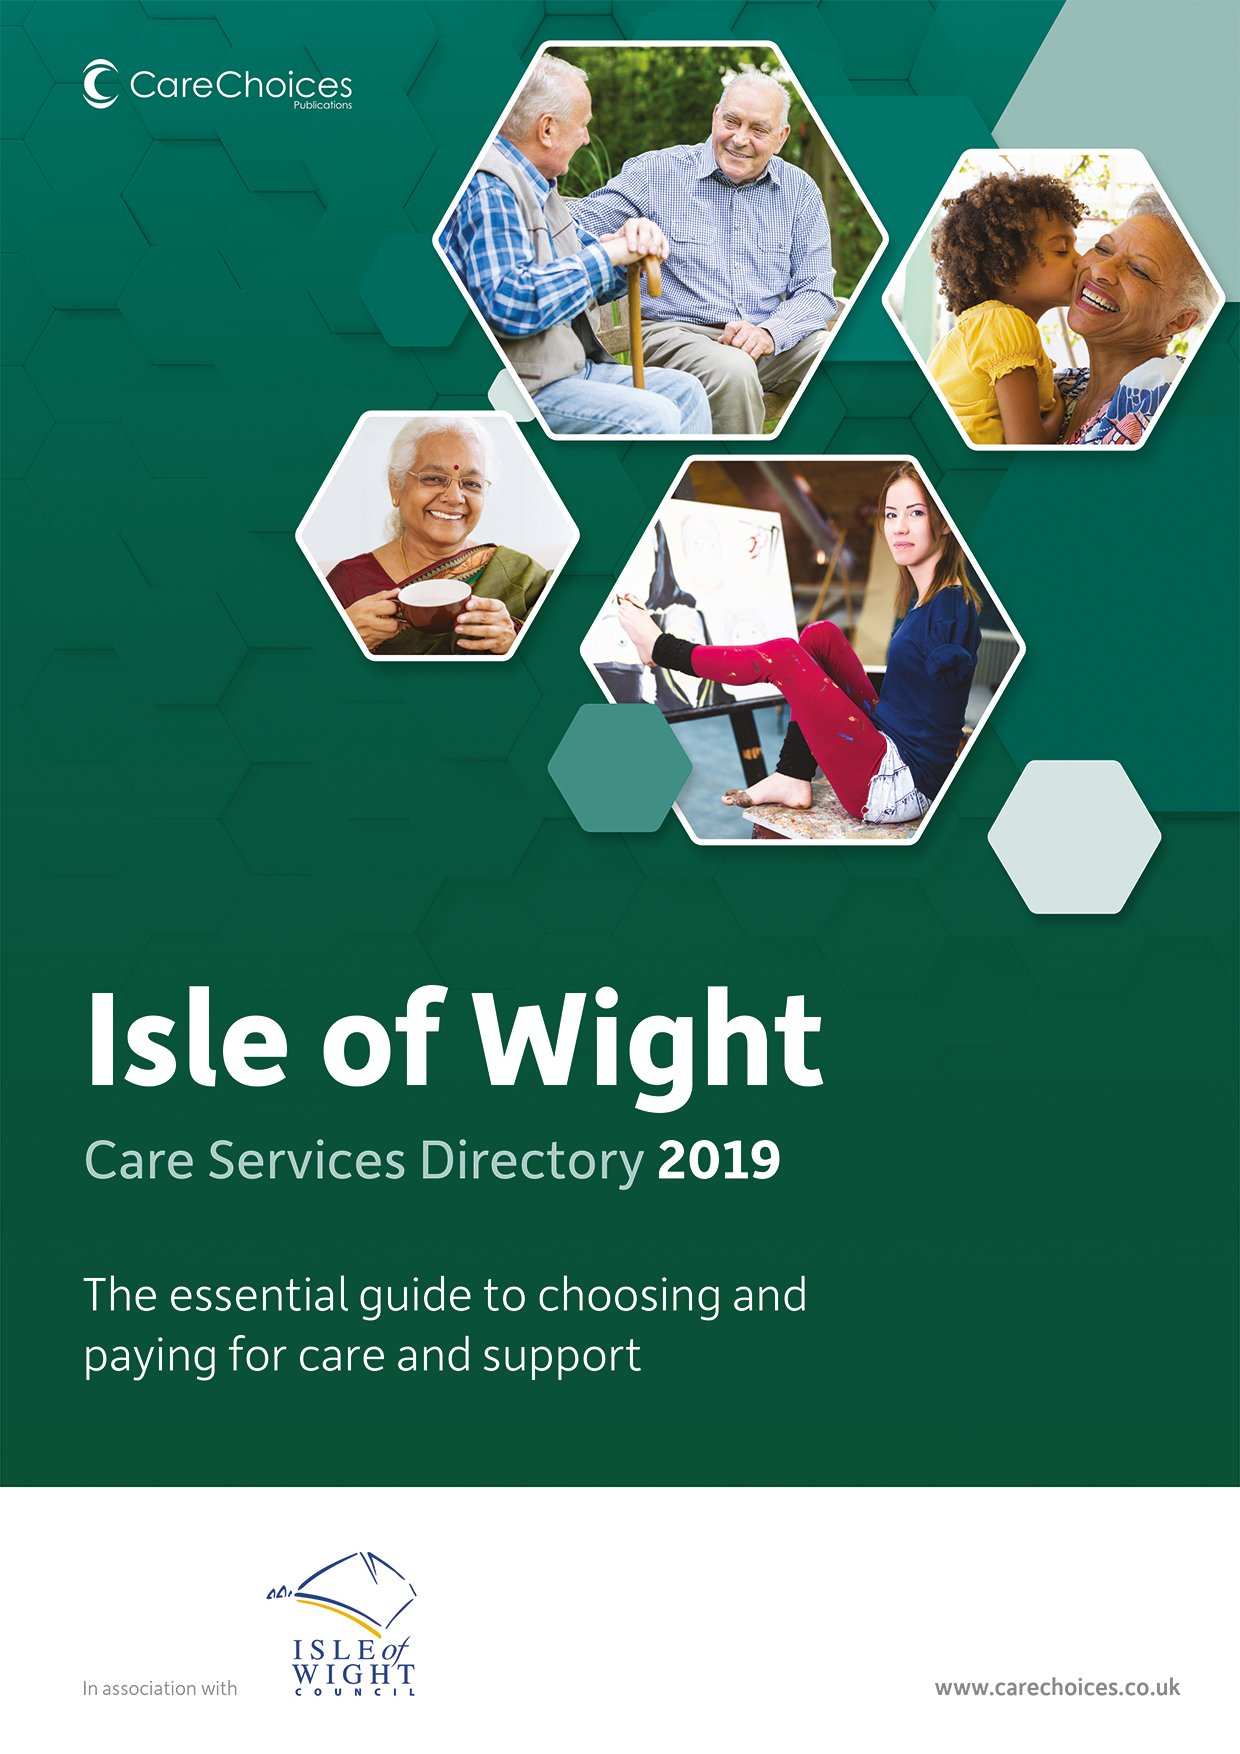 Isle of Wight Care Services Directory - Care Choices